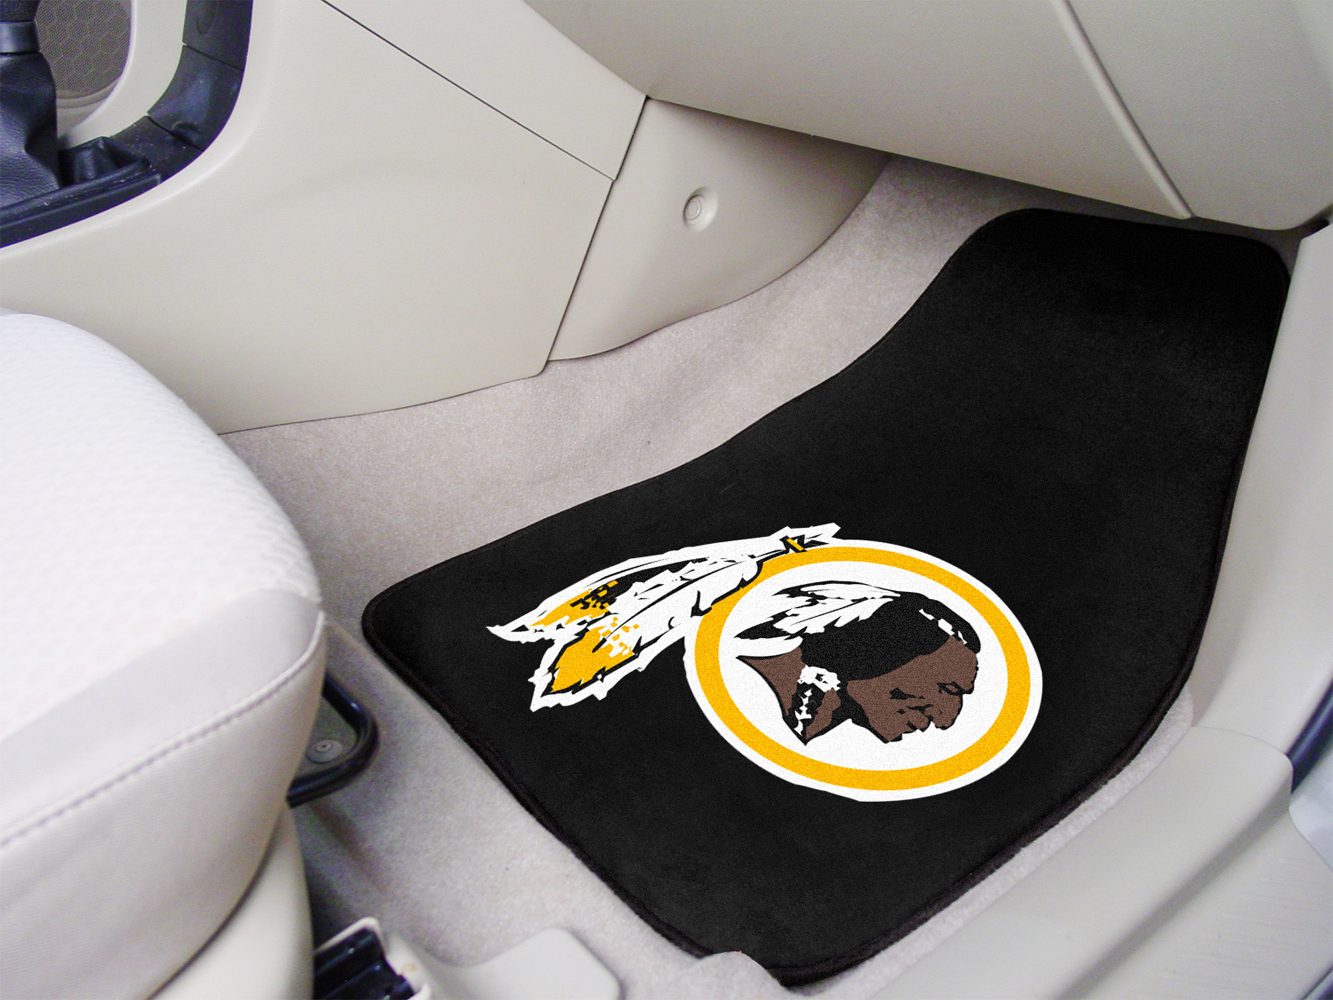 Astounding Washington Redskins Nfl Logo Carpet Car Mats 2 Piece Set Squirreltailoven Fun Painted Chair Ideas Images Squirreltailovenorg